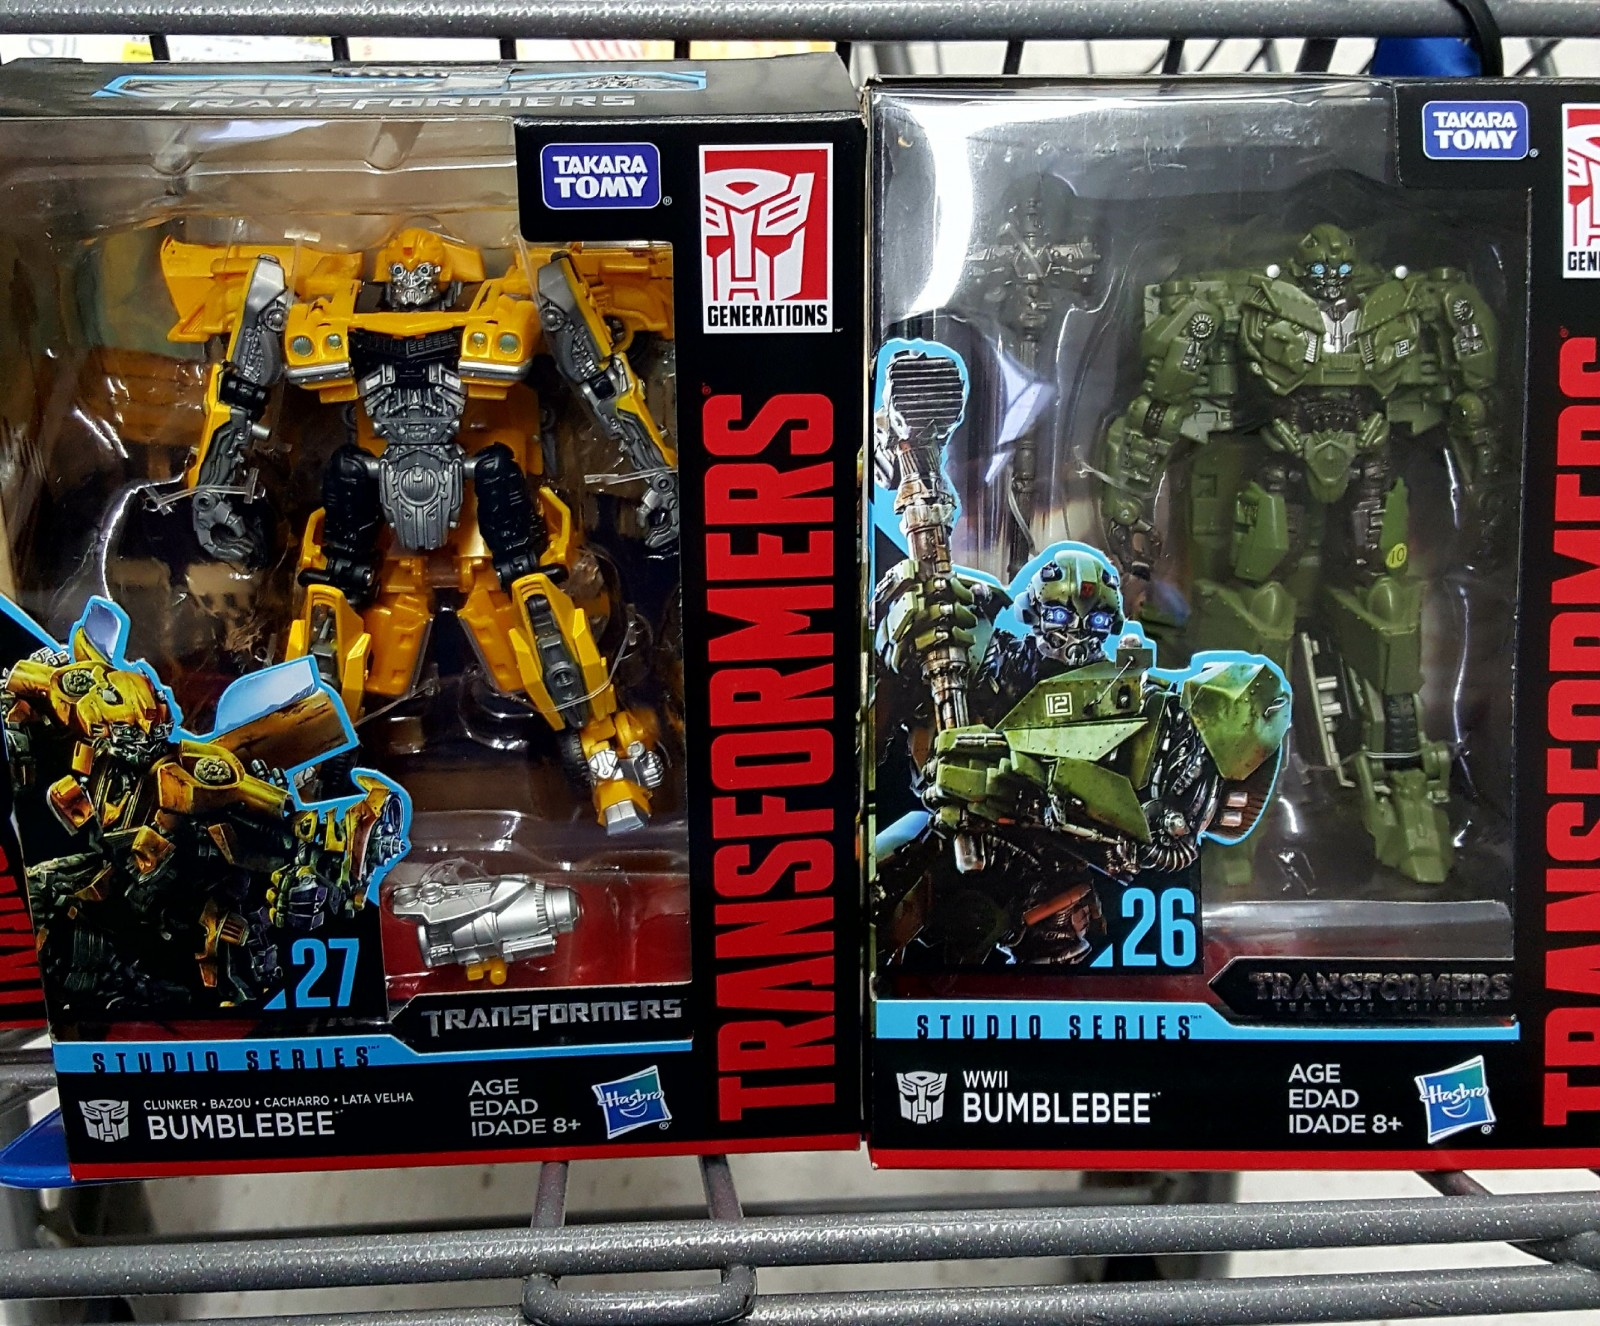 Transformers News: Studio Series #26 and #27 Spotted at USA Retail